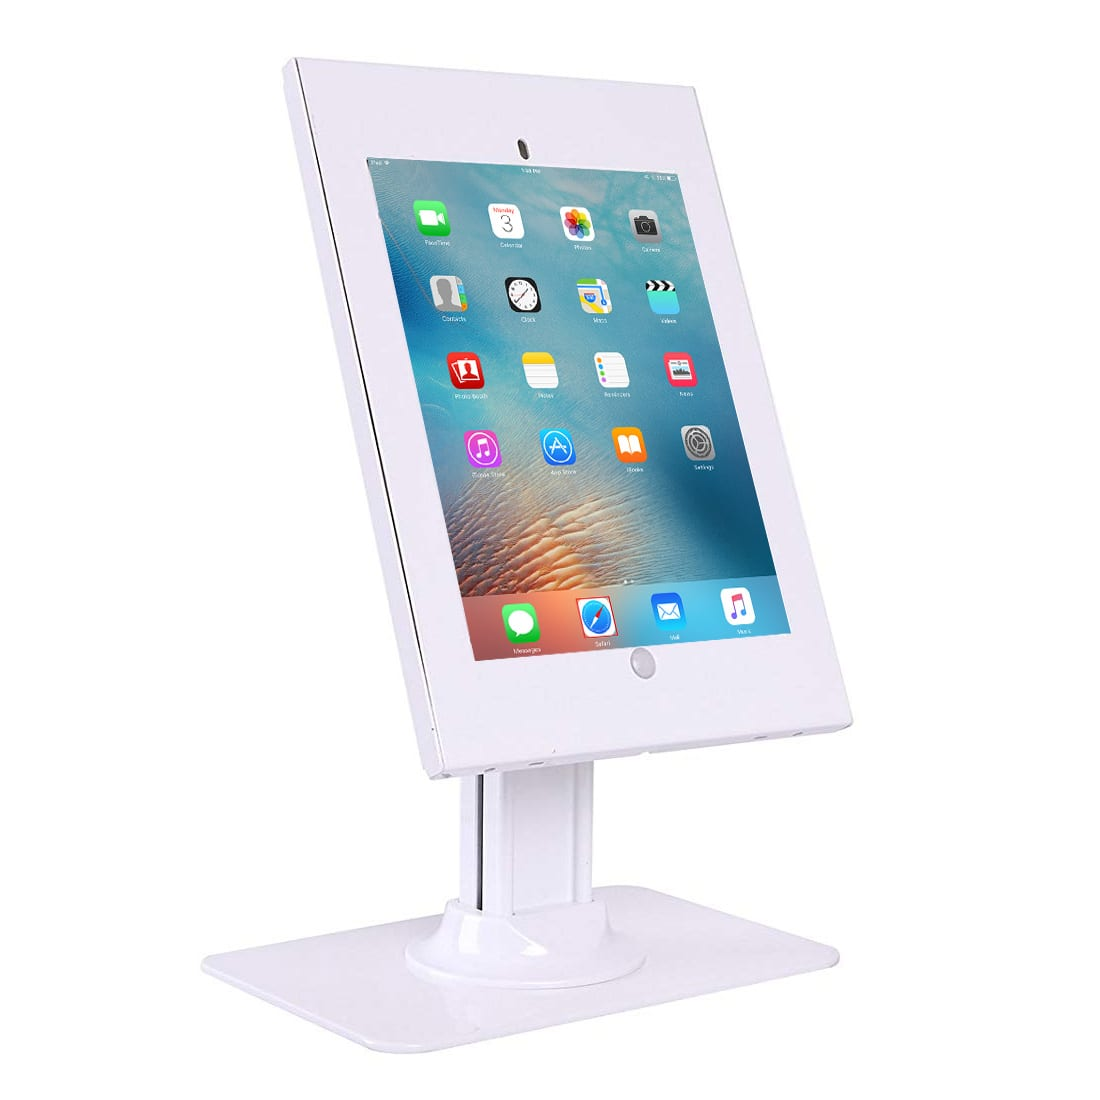 Exhibition Stand Application Form : Ipp series ipad pro ″ kiosk stand anti theft